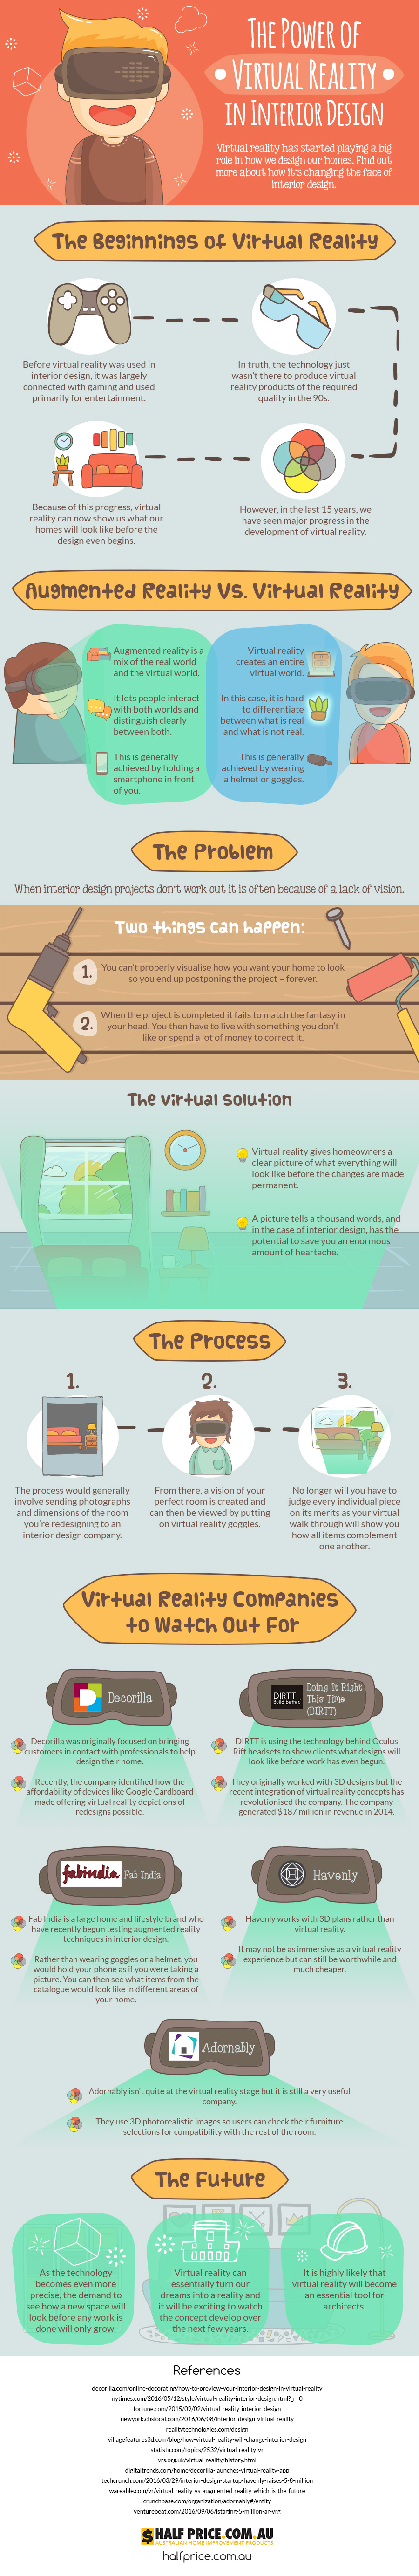 The New Power Tool in Interior Design: Virtual Reality - Infographic